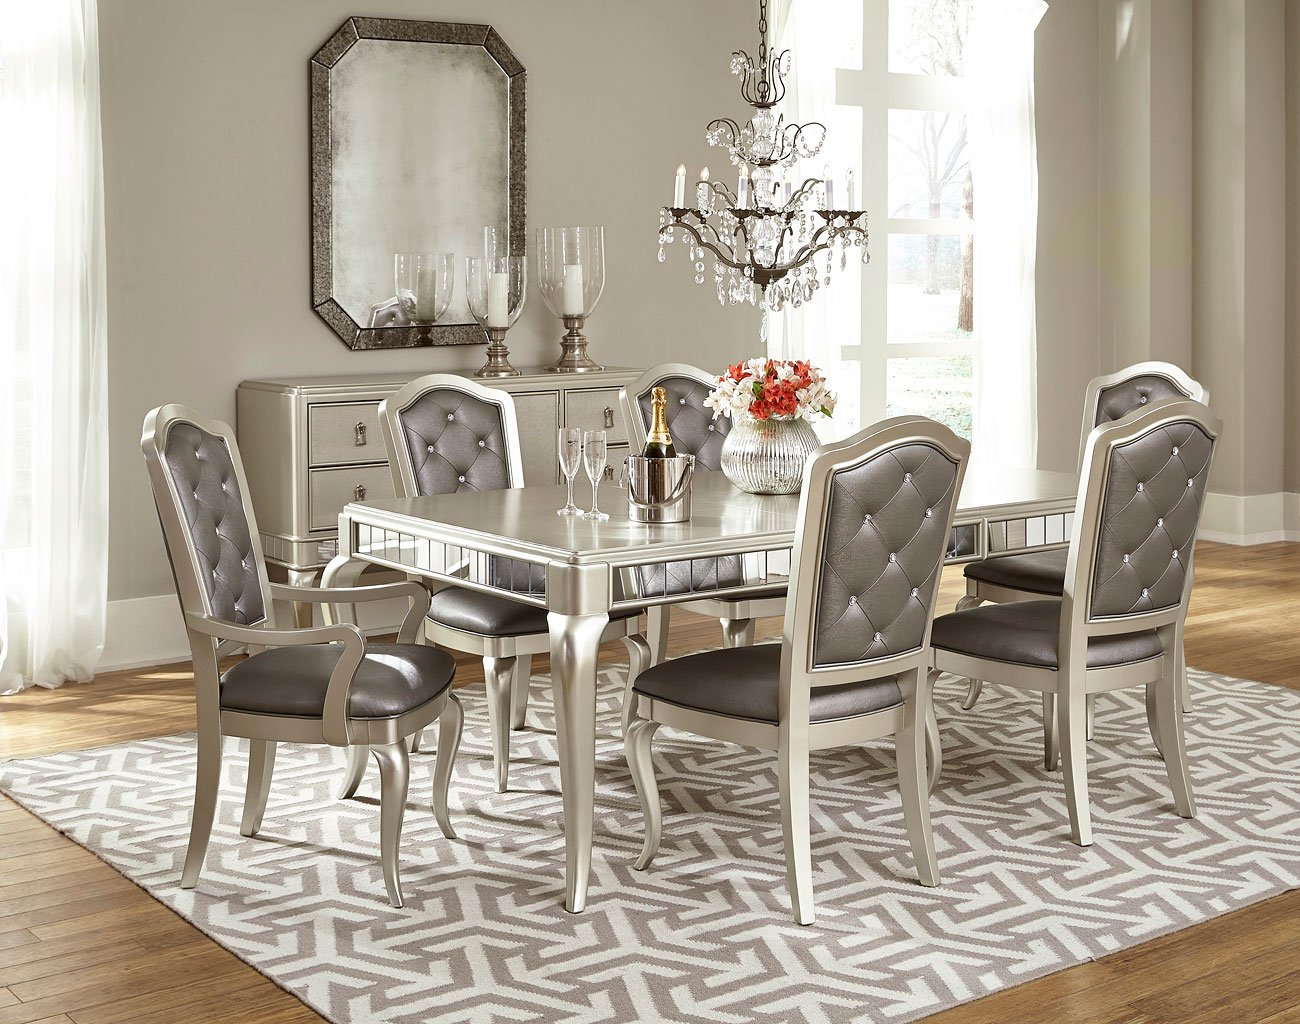 Diva Dining Room Set Samuel Lawrence Furniture 2 Reviews